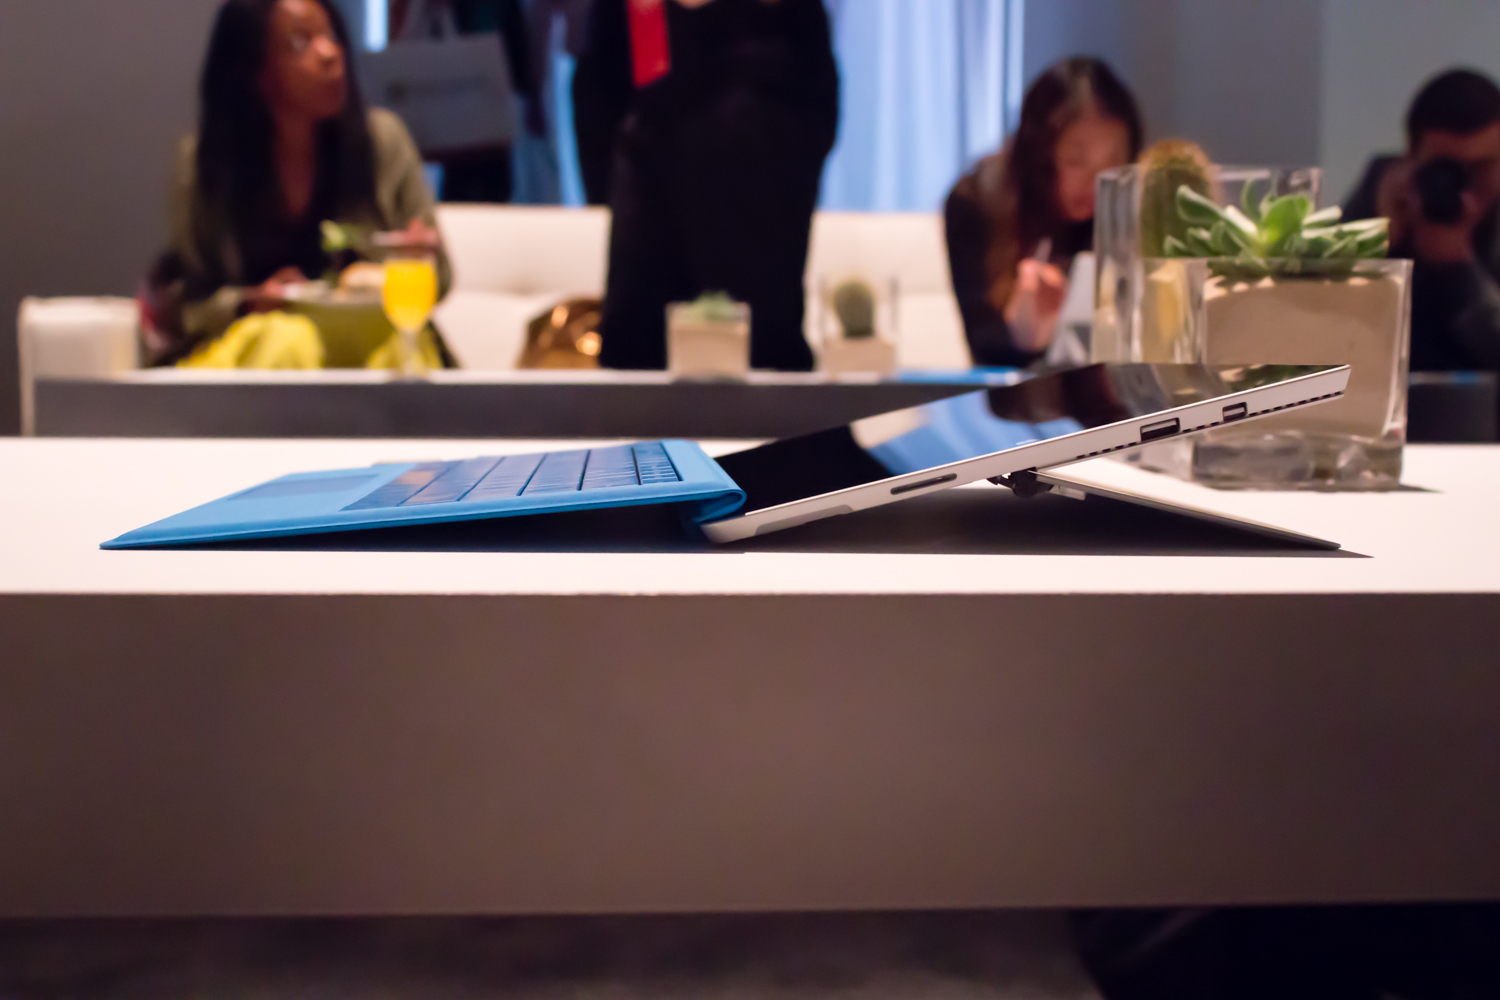 No more superglued USB ports: Surface hardware can be locked down in